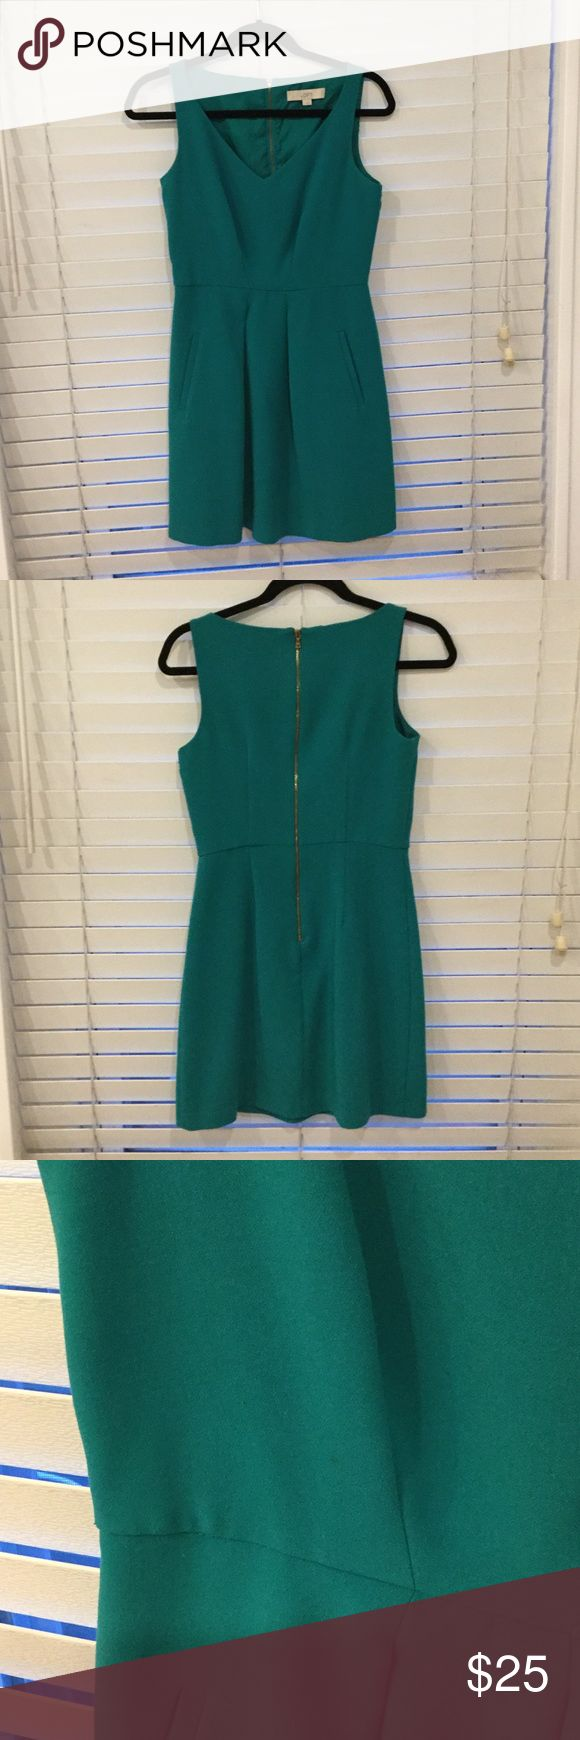 Ann Taylor LOFT green work dress Ann Taylor LOFT dress in a beautiful green color. Has pockets!! I love this dress, just have no use for it anymore. There is a tiny tiny stain as shown in the third picture, not noticeable when worn but happy to post more pictures if you are worried about it! LOFT Dresses